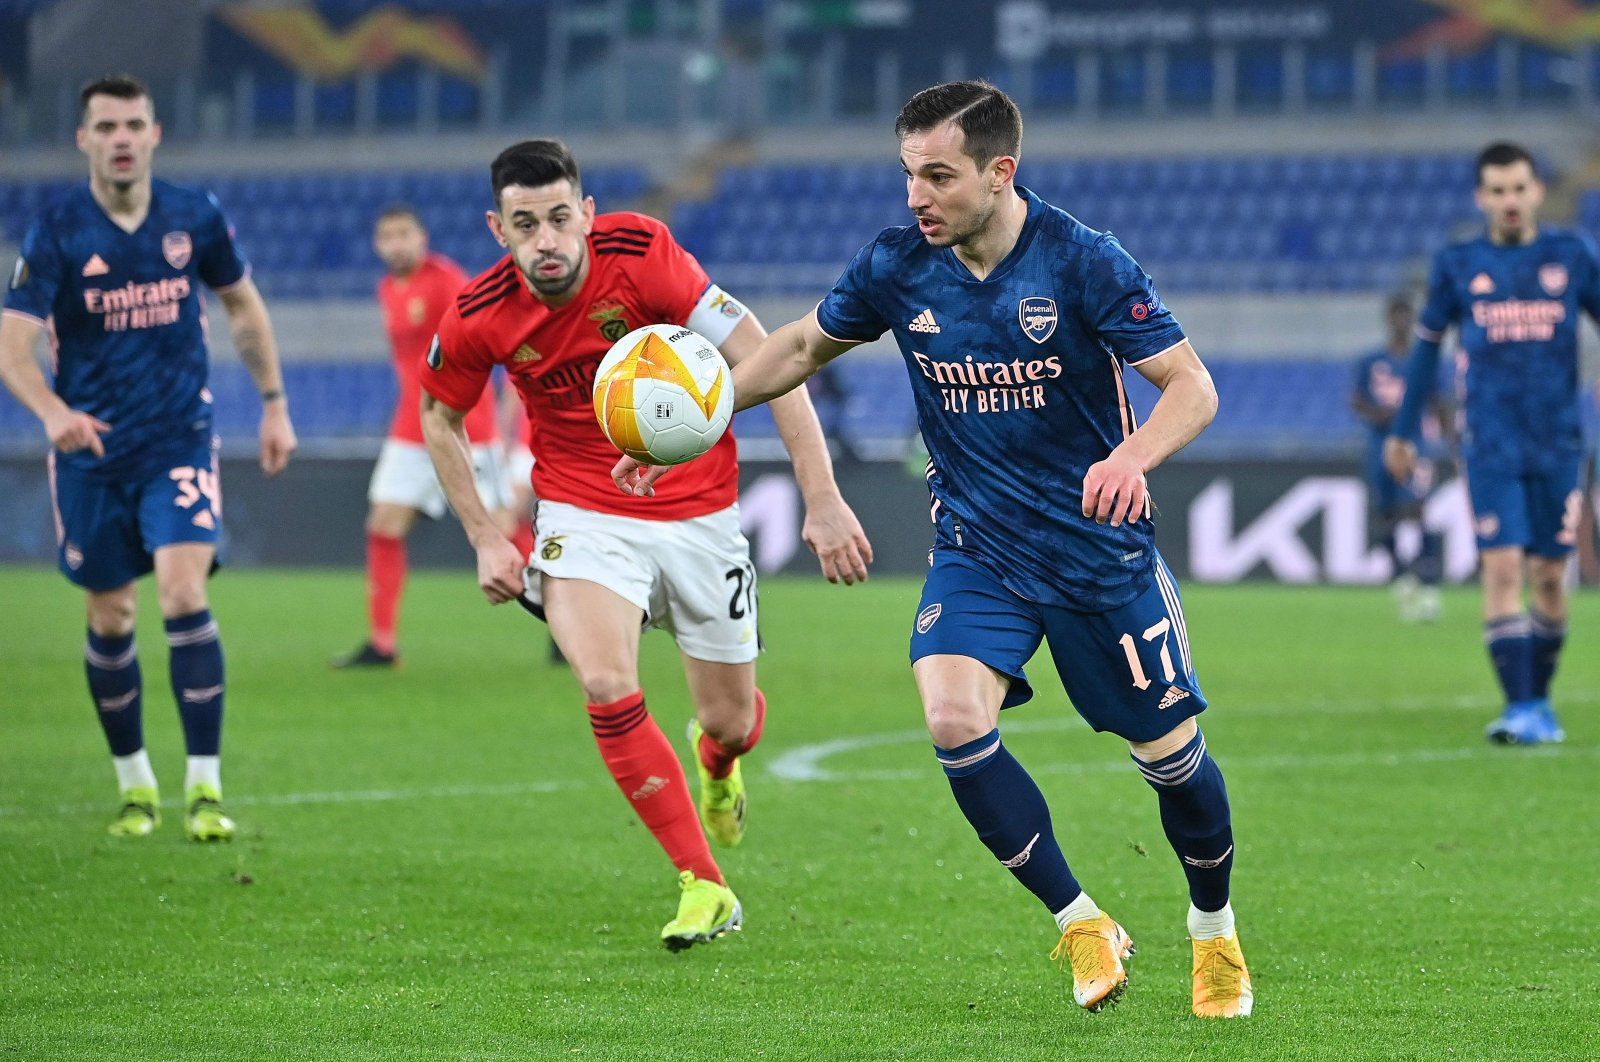 Arsenal defender Cedric Soares (R) challenges Benfica midfielder Pizzi during the UEFA Europa League round of 32 first leg match at the Olimpico stadium, Rome, Italy, Feb. 18, 2021. (AFP Photo)